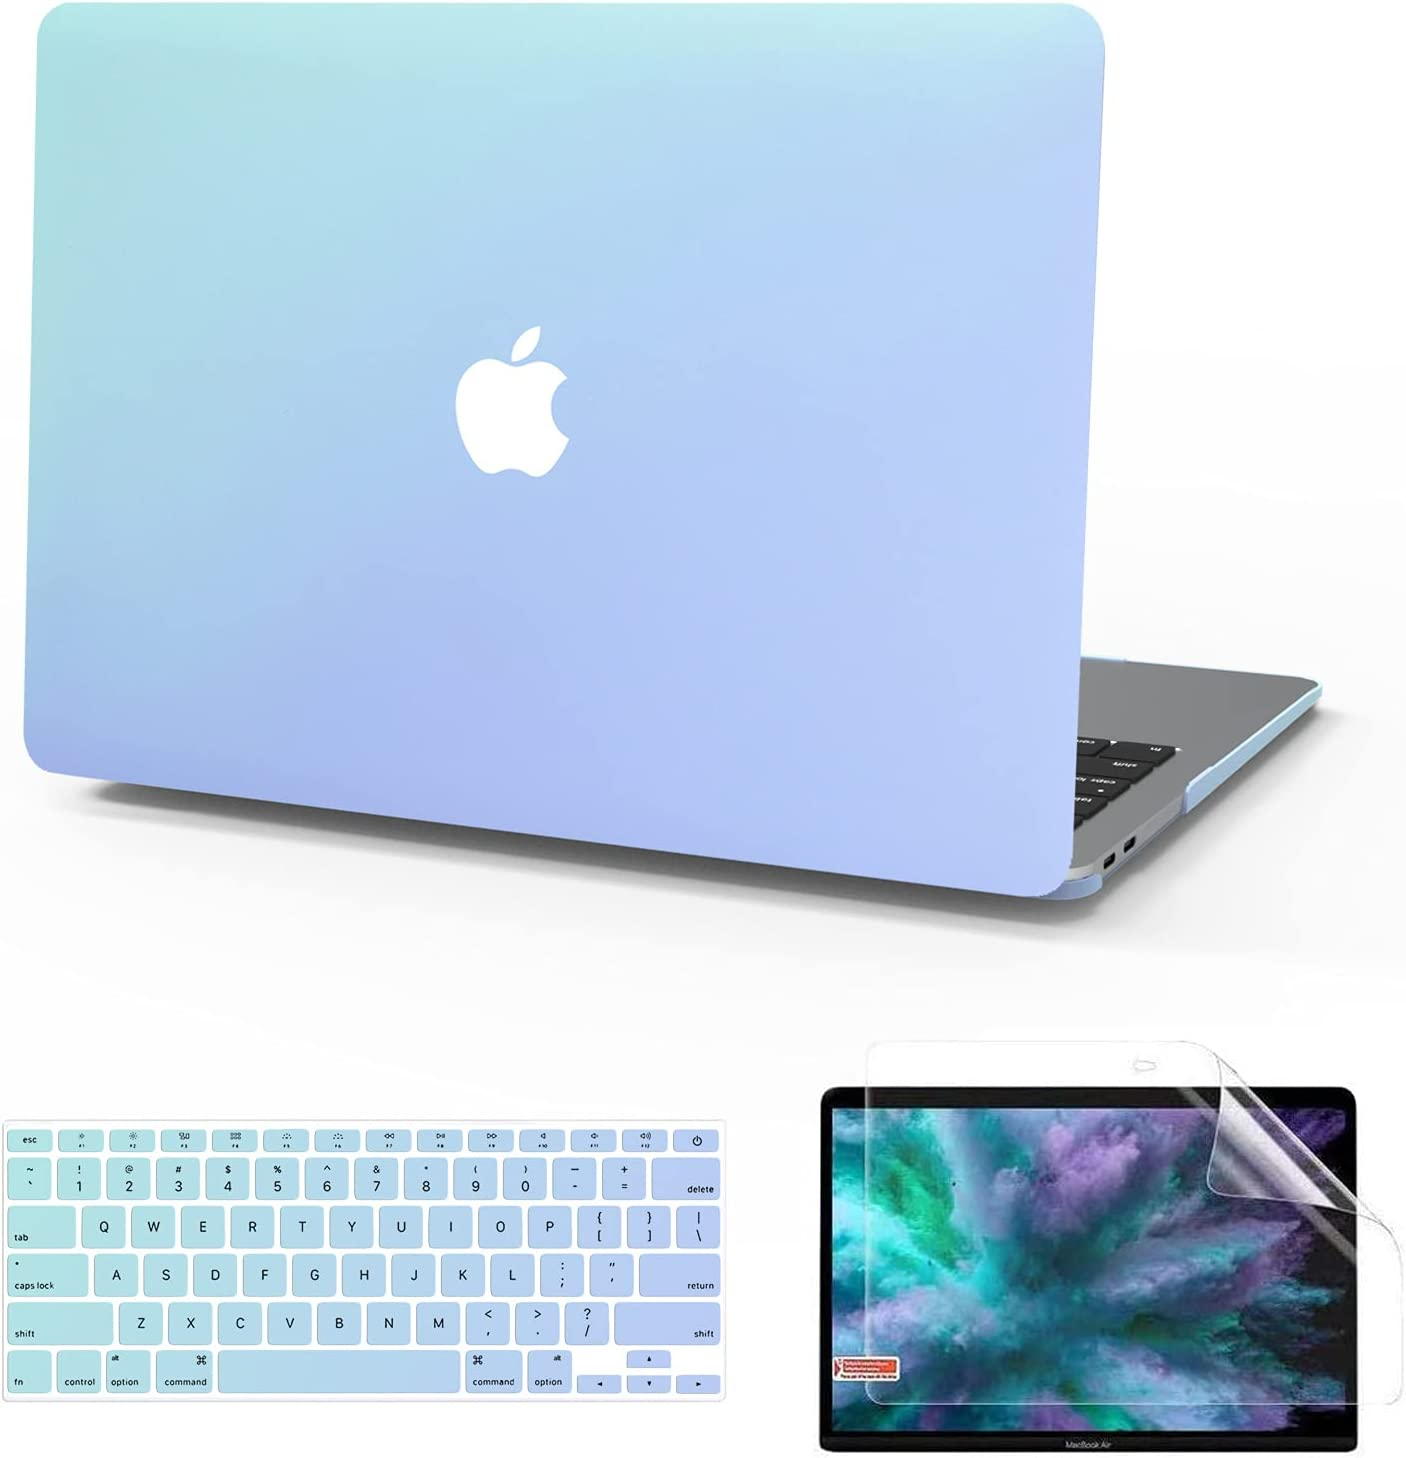 Ultra Slim Smooth Plastic Hard Corner Protective Shell Cover Compatible with MacBook Air 13 Inch Anban MacBook Air 13 Inch Case Model:A1369 /& A1466, Older Version 2010-2017 Release